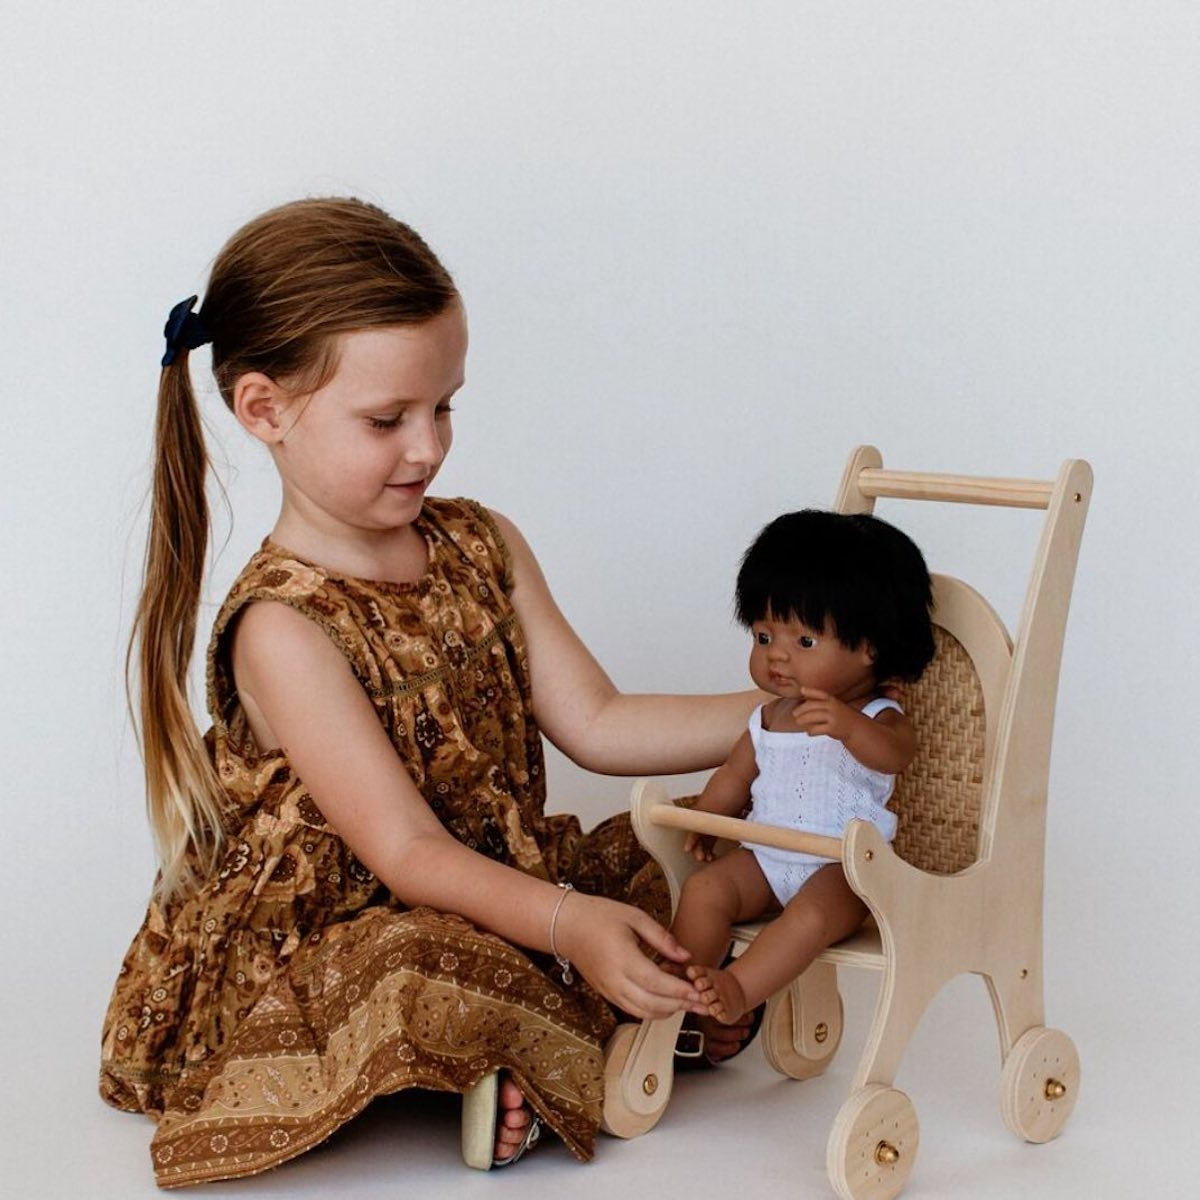 Little girl wearing a brown dress playing with a Pretty in Pine doll in a wooden pram